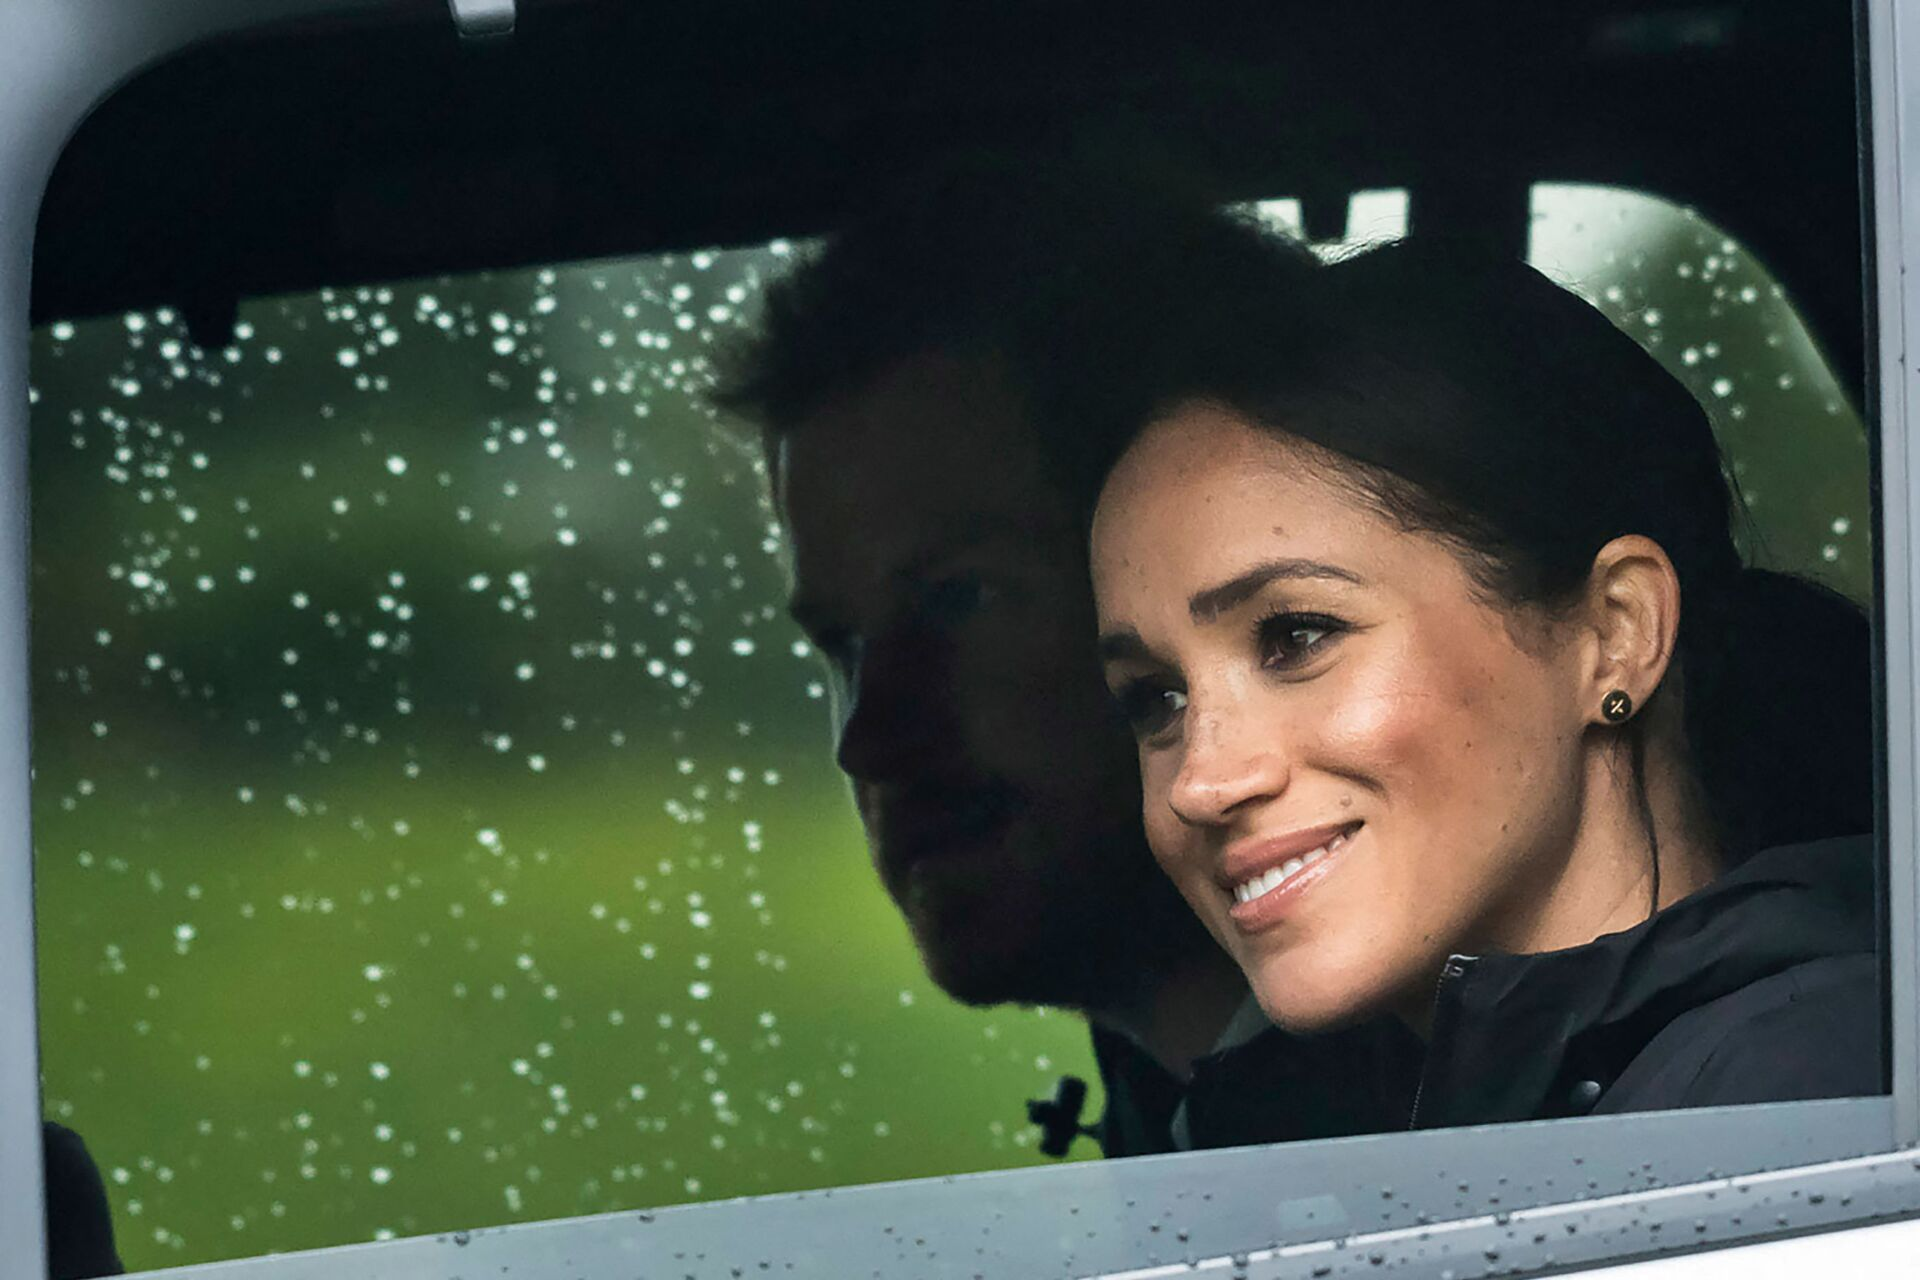 Prince Harry Accuses Royals of 'Total Silence, Neglect' Towards His and Meghan's Mental Struggles - Sputnik International, 1920, 21.05.2021